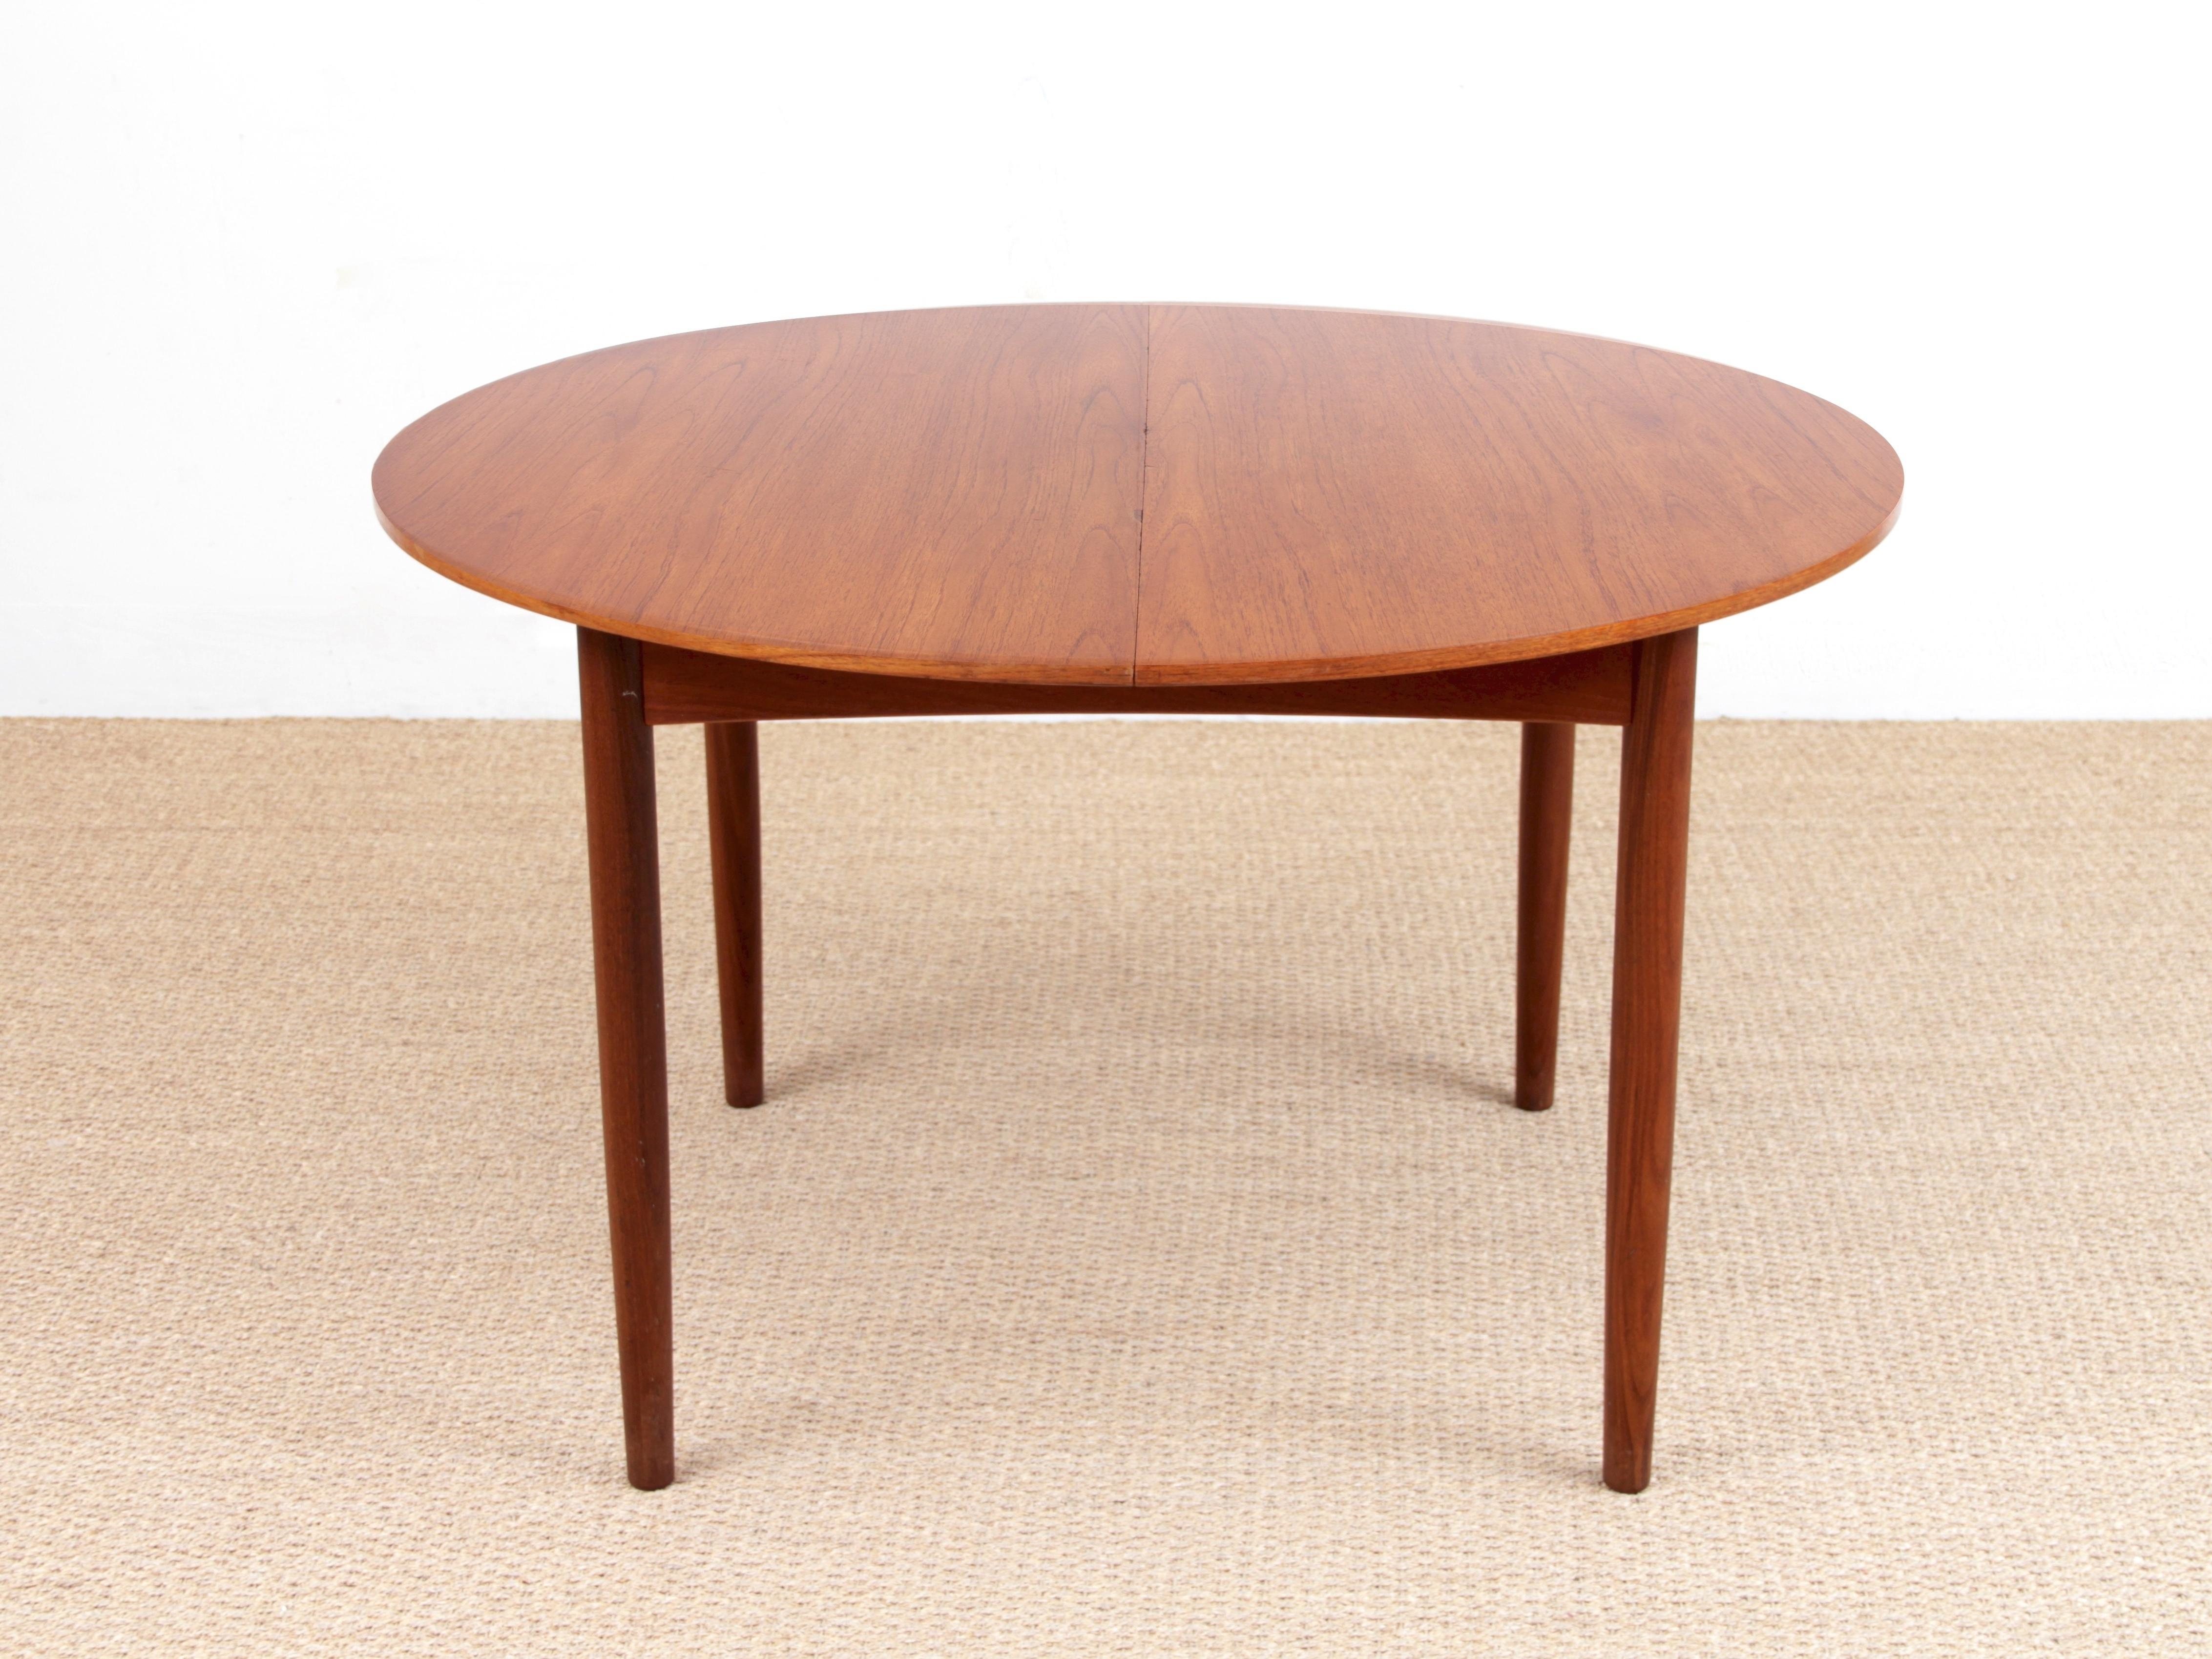 Popular Scandinavian Round Teak Dining Table With 2 Extensions 410 People With Round Teak Dining Tables (View 21 of 25)